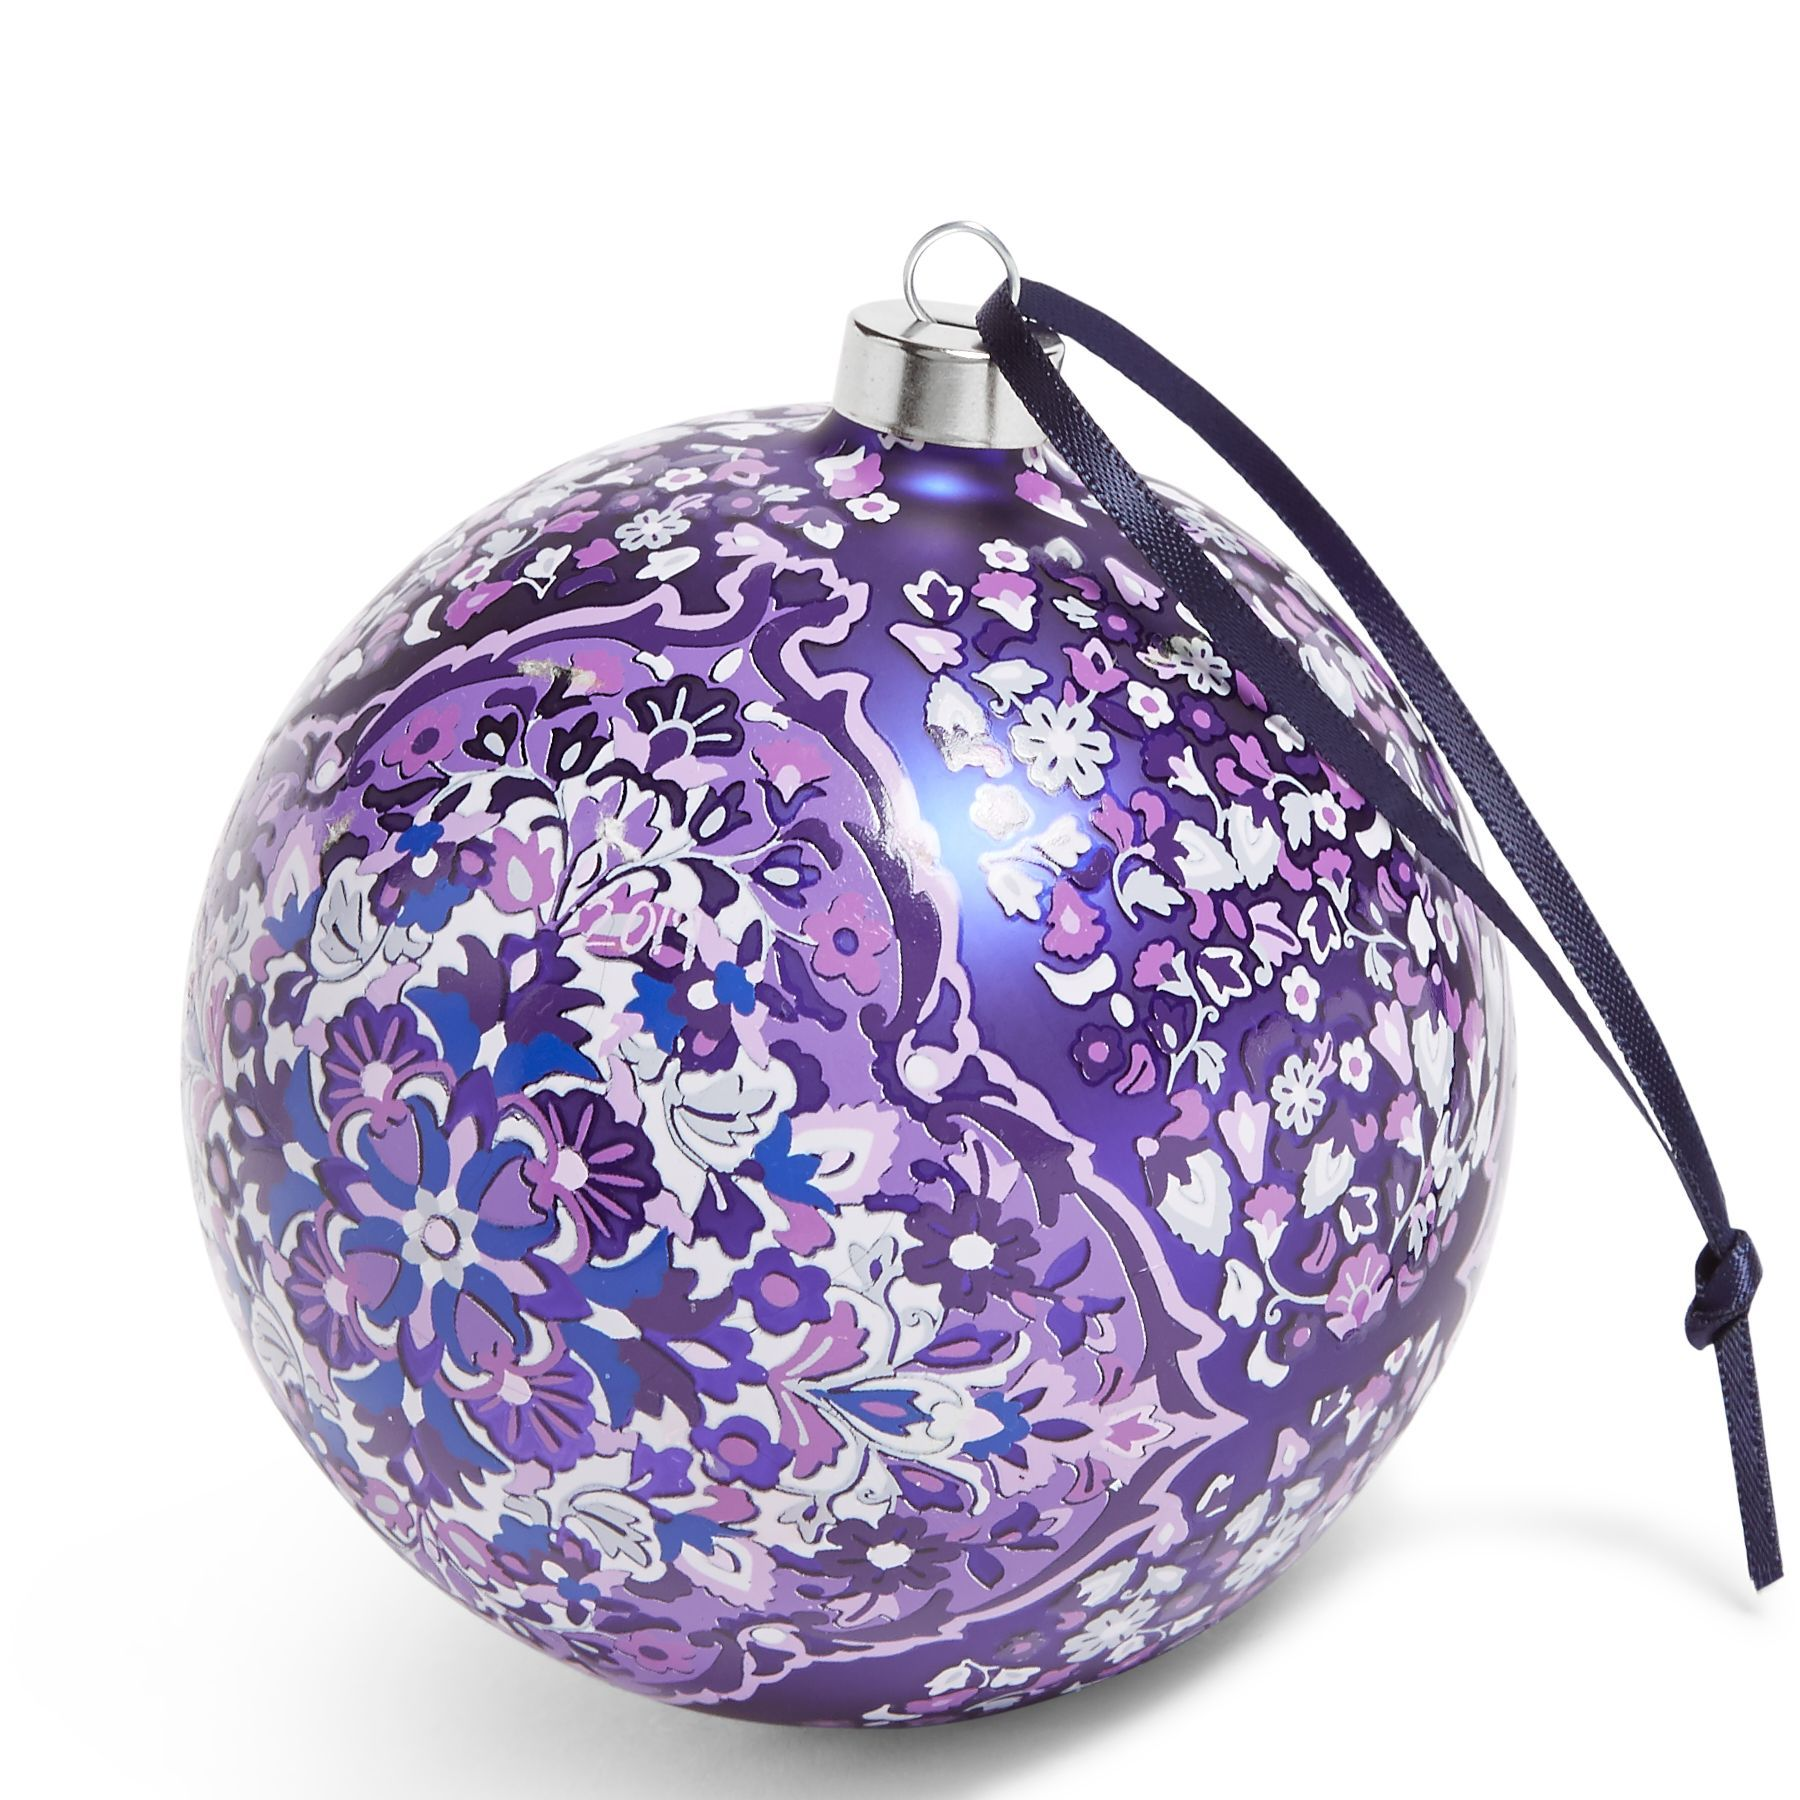 Ornament in 2020 Ornaments, Vera bradley, Christmas bulbs